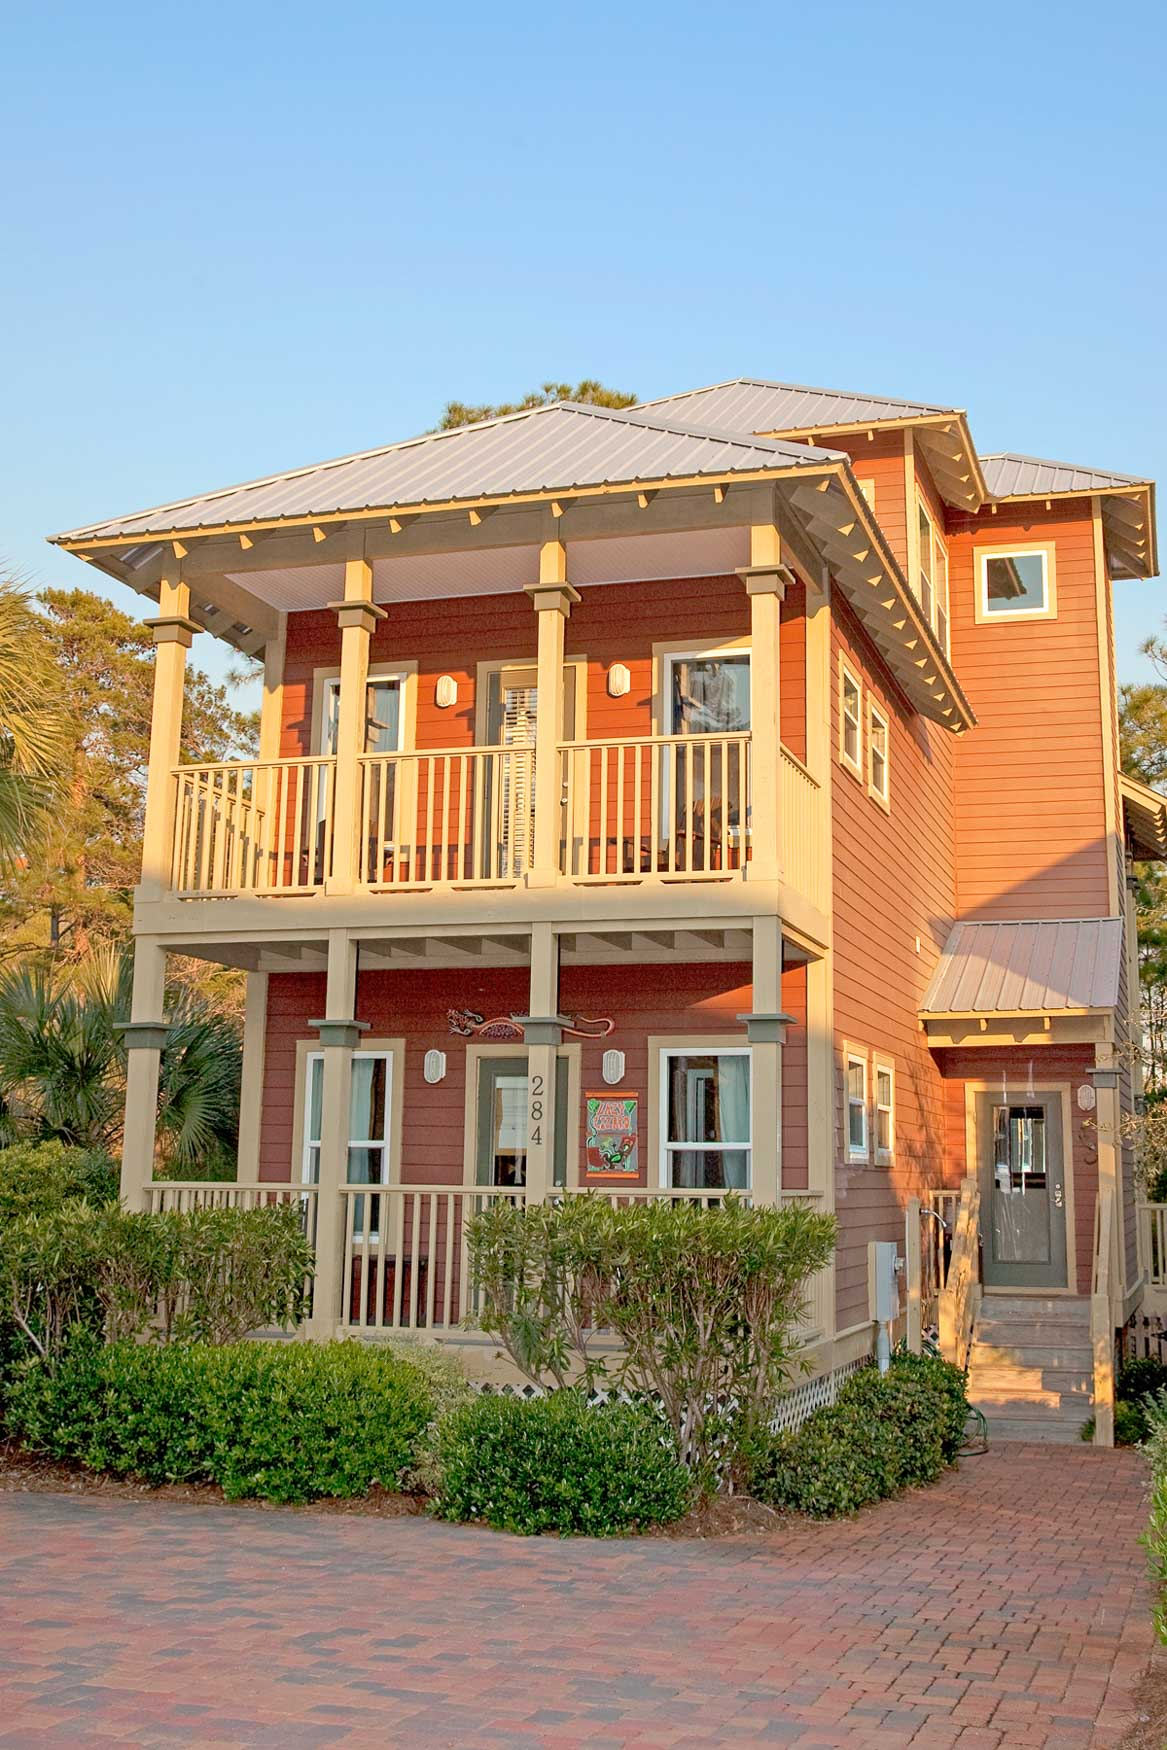 Exterior of nice two storie, burnt orange New Construction home in Old Florida Village on 30A.